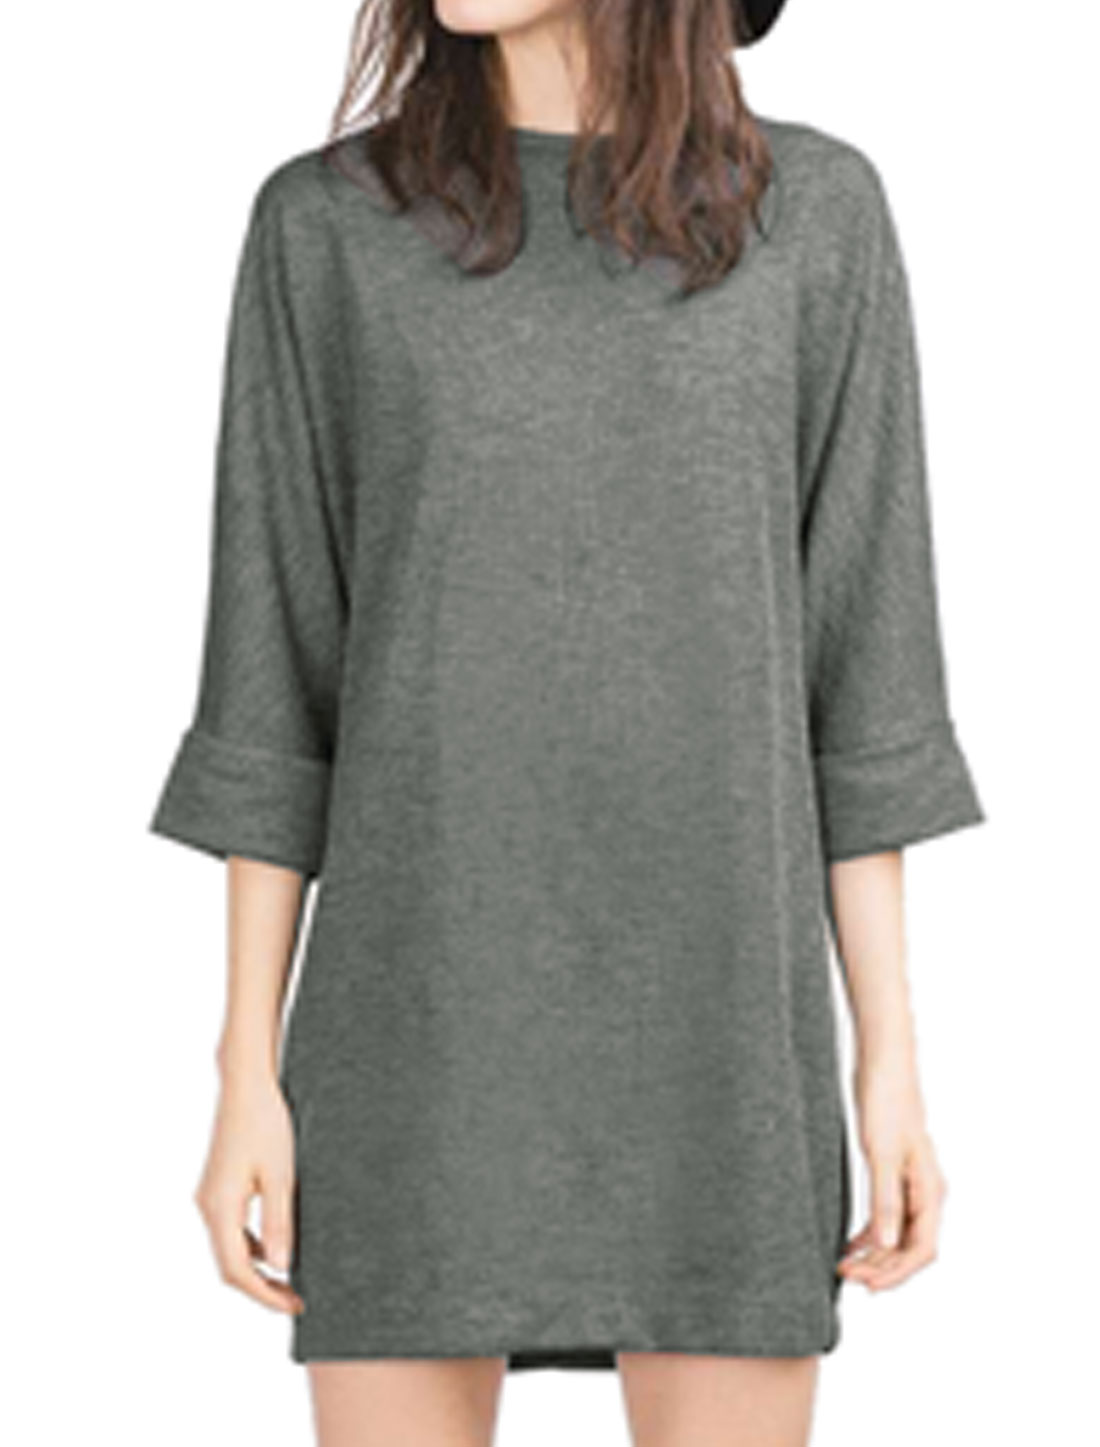 Women Batwing Sleeves Crew Neck Mini Tunic Dress Gray XS